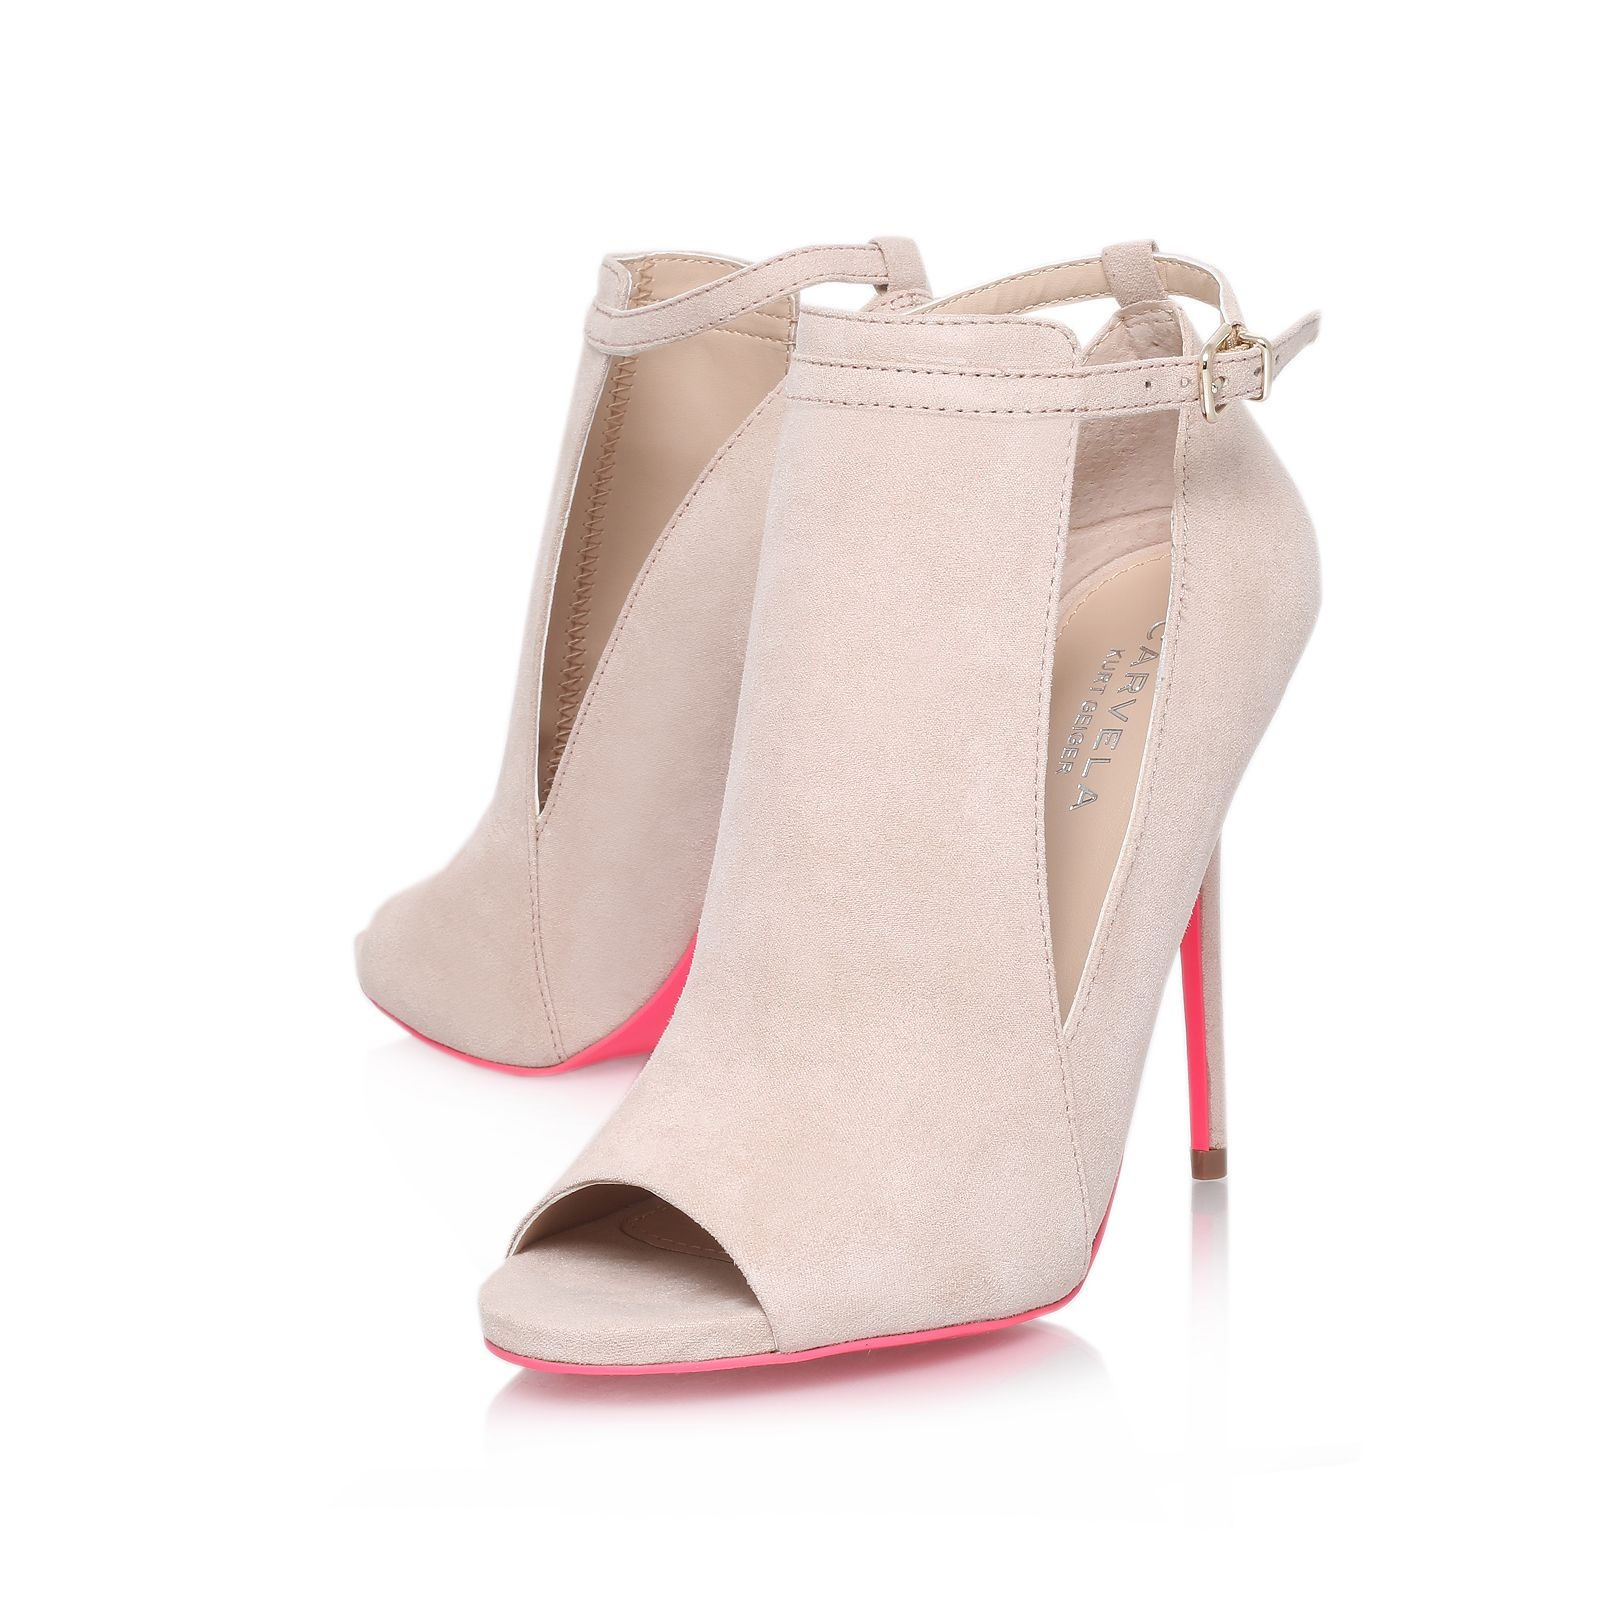 Glance high heel court shoes